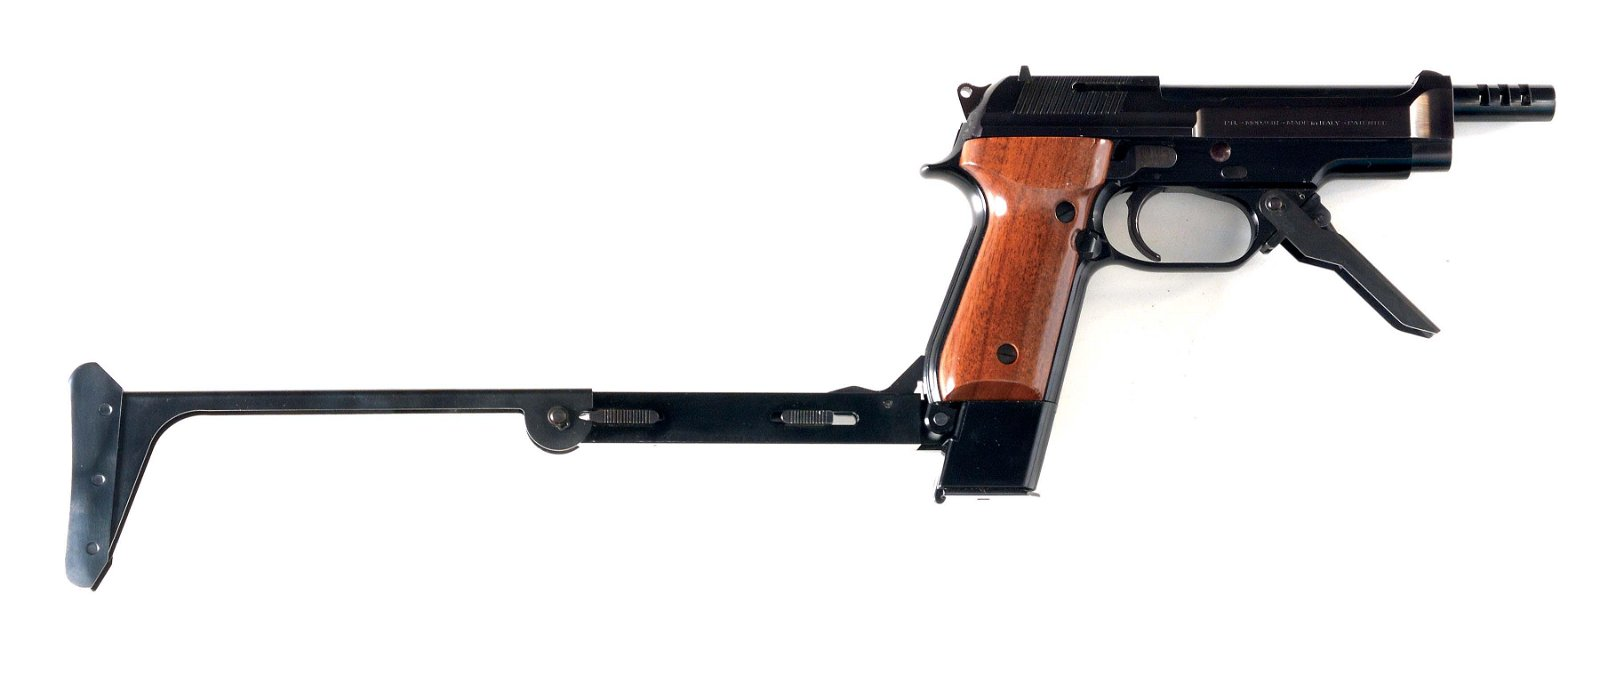 (N) VERY RARE AND HIGHLY SOUGHT BERETTA 93R SELECT FIRE